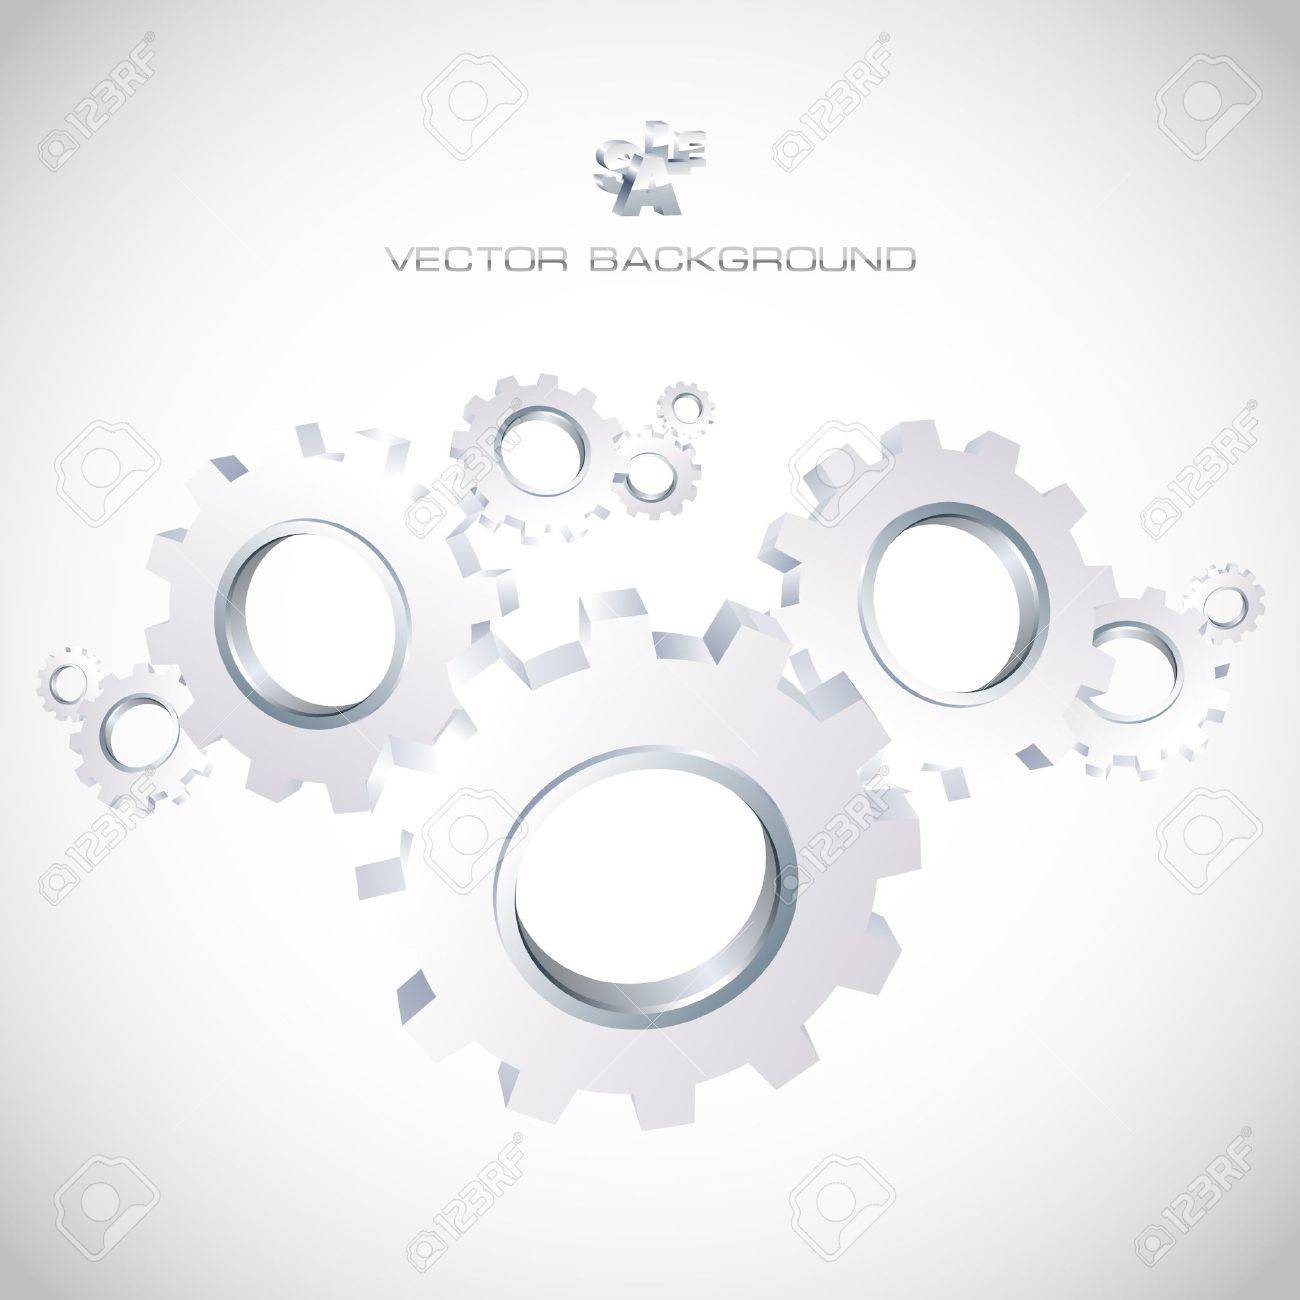 Gear background. Abstract illustration. Stock Vector - 7881990